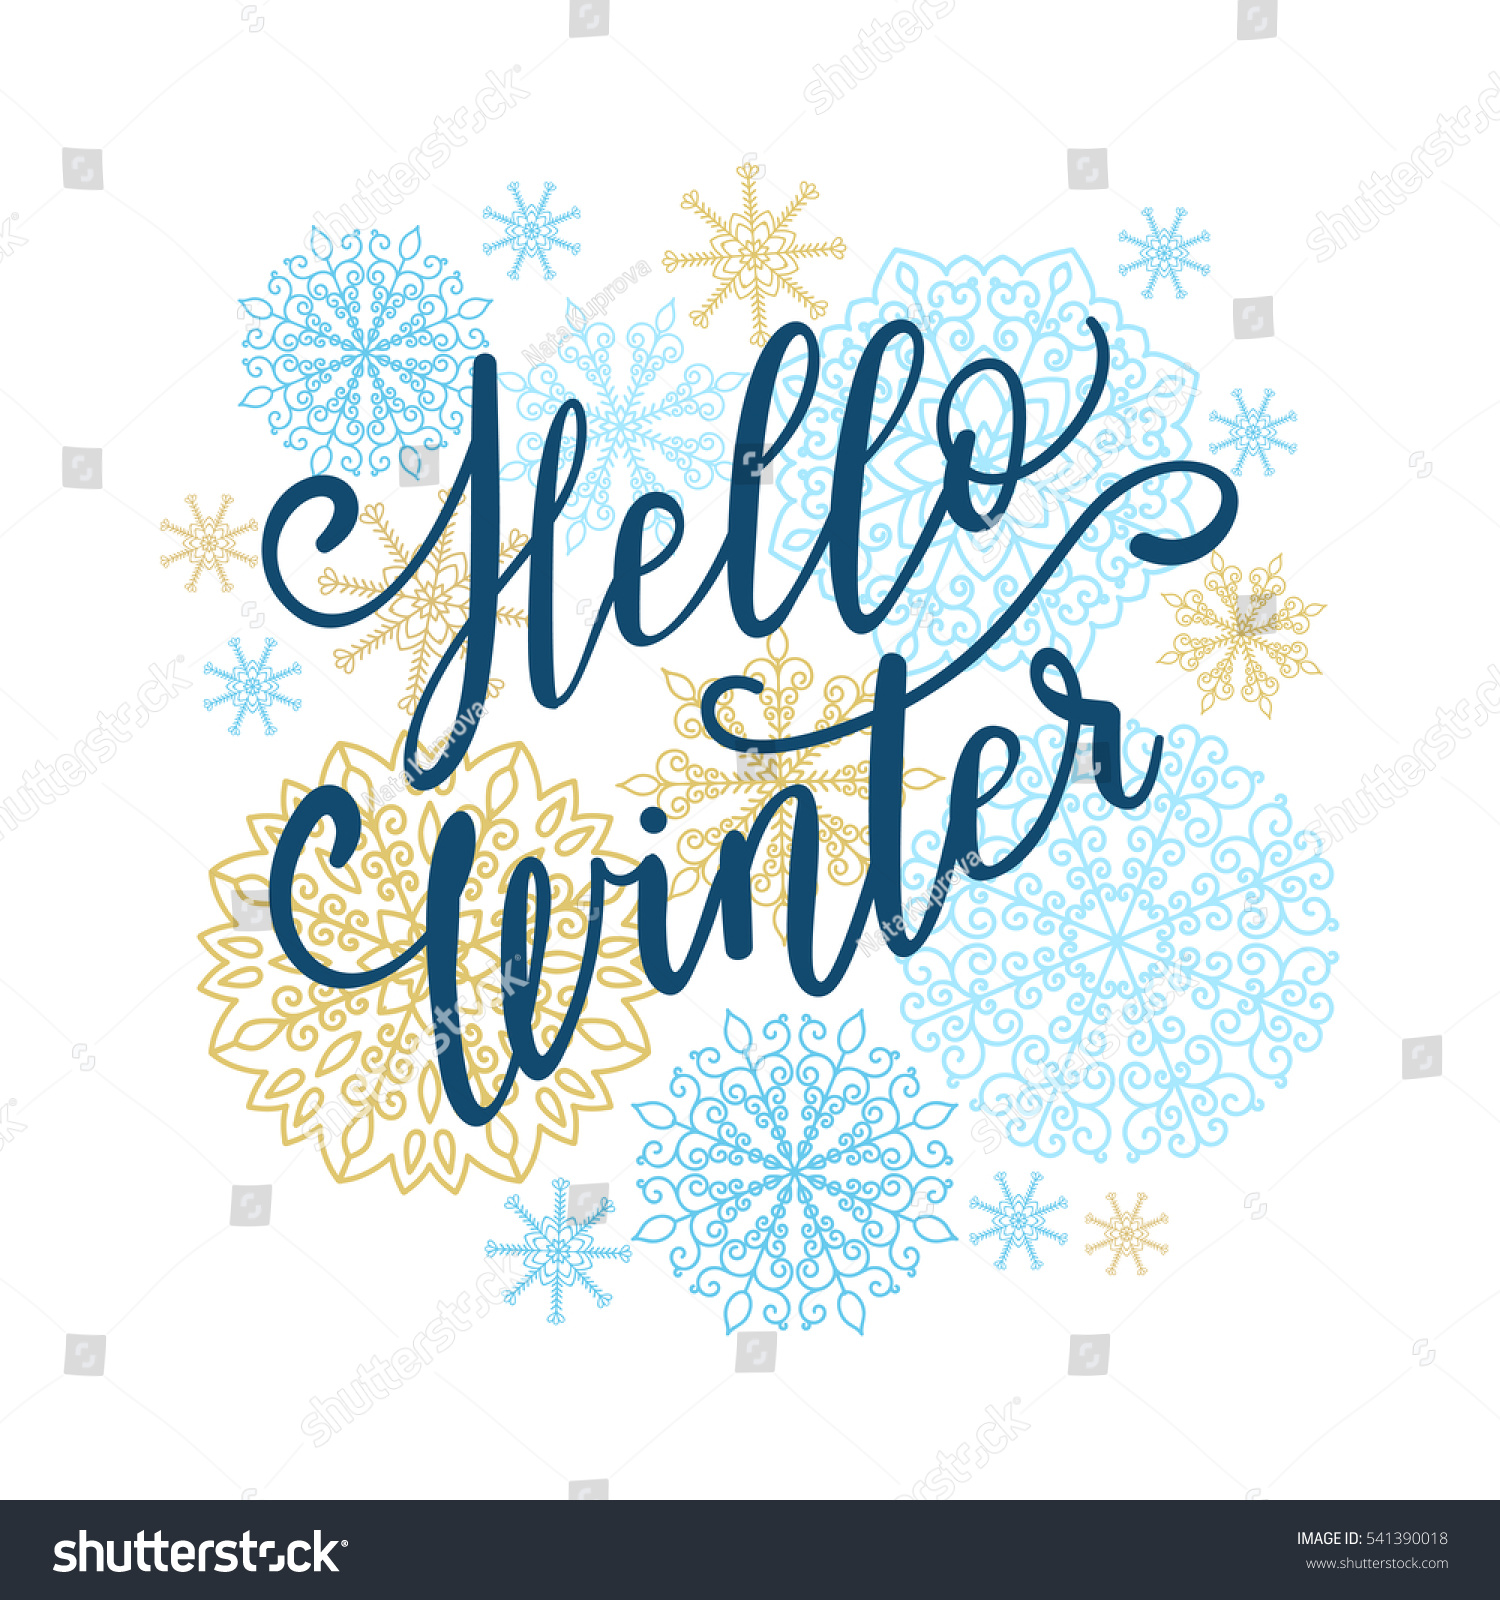 Hello Winter Greeting Card. Vector Winter Holiday Background With Hand  Lettering Calligraphy, Snowflakes,